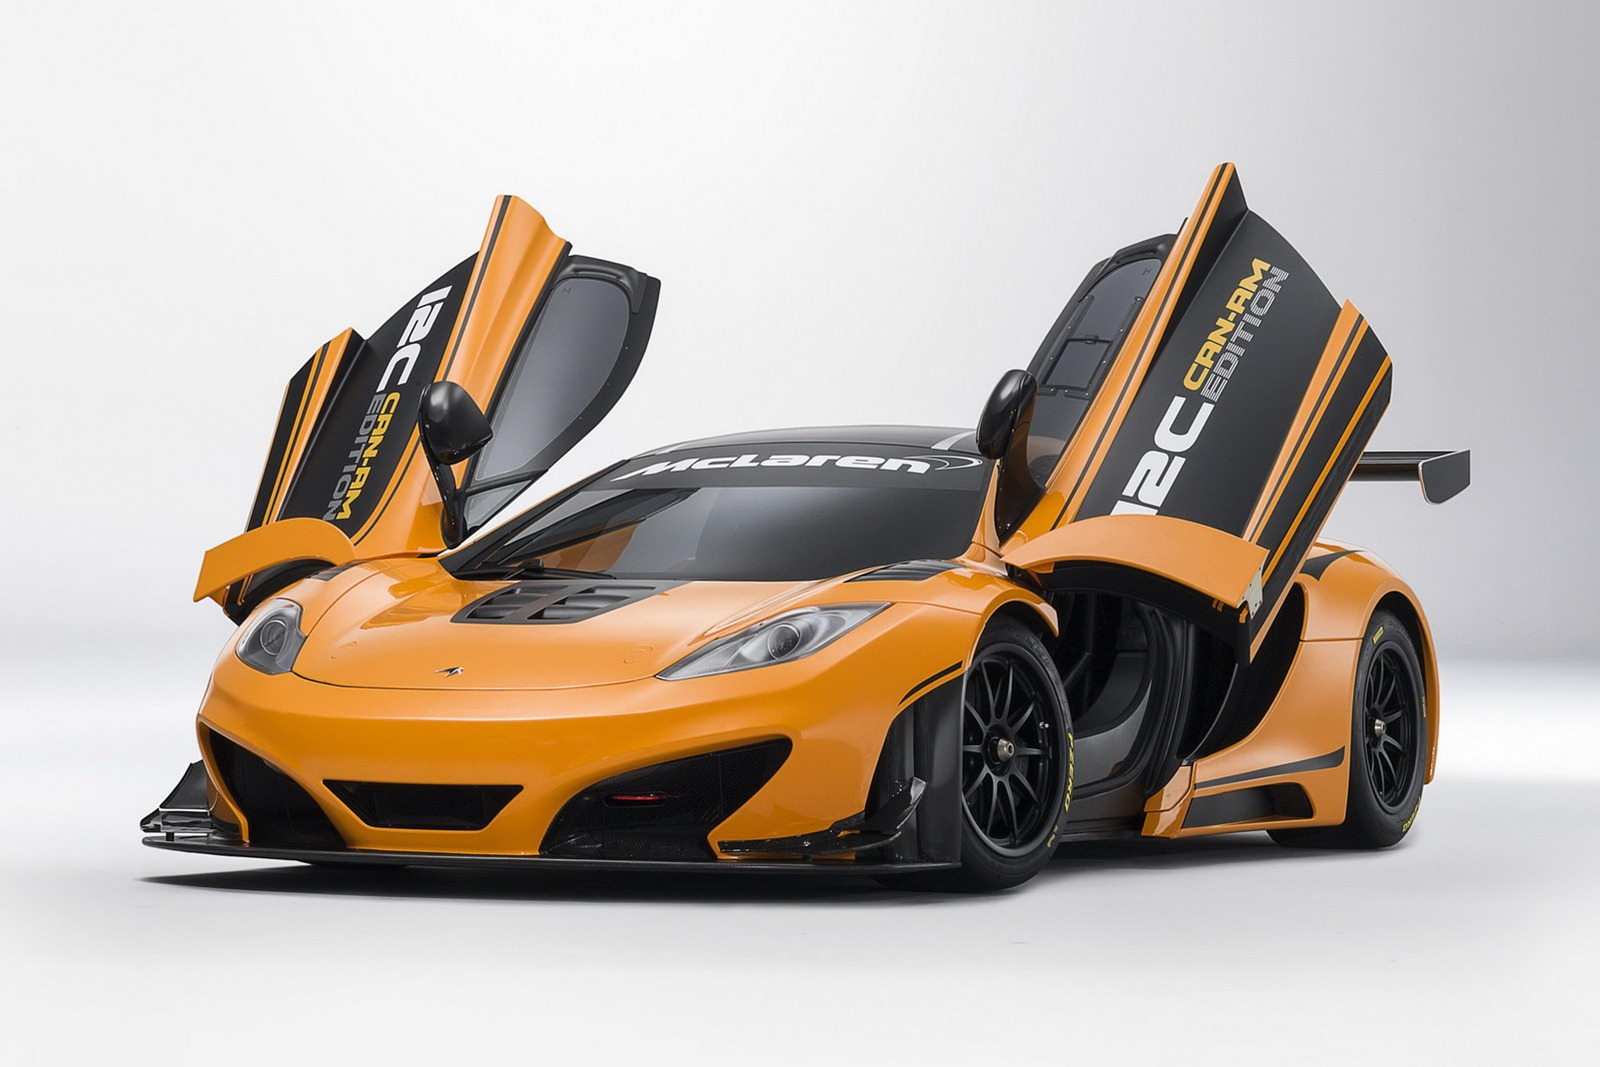 mclaren to unveil mp4 12c can am edition at pebble beach. Black Bedroom Furniture Sets. Home Design Ideas